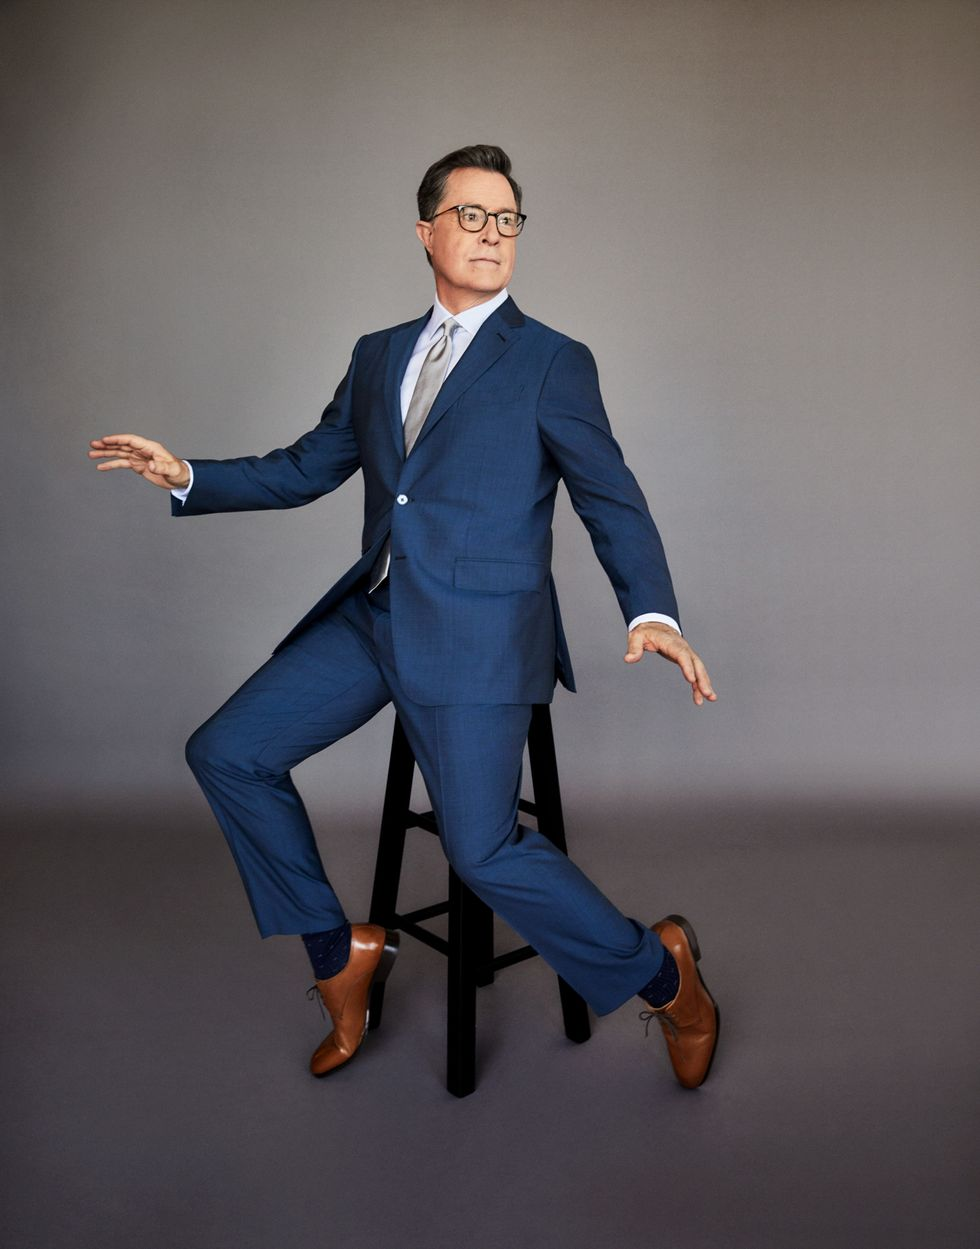 Stephen Colbert in a navy blue suit sitting on a stool.